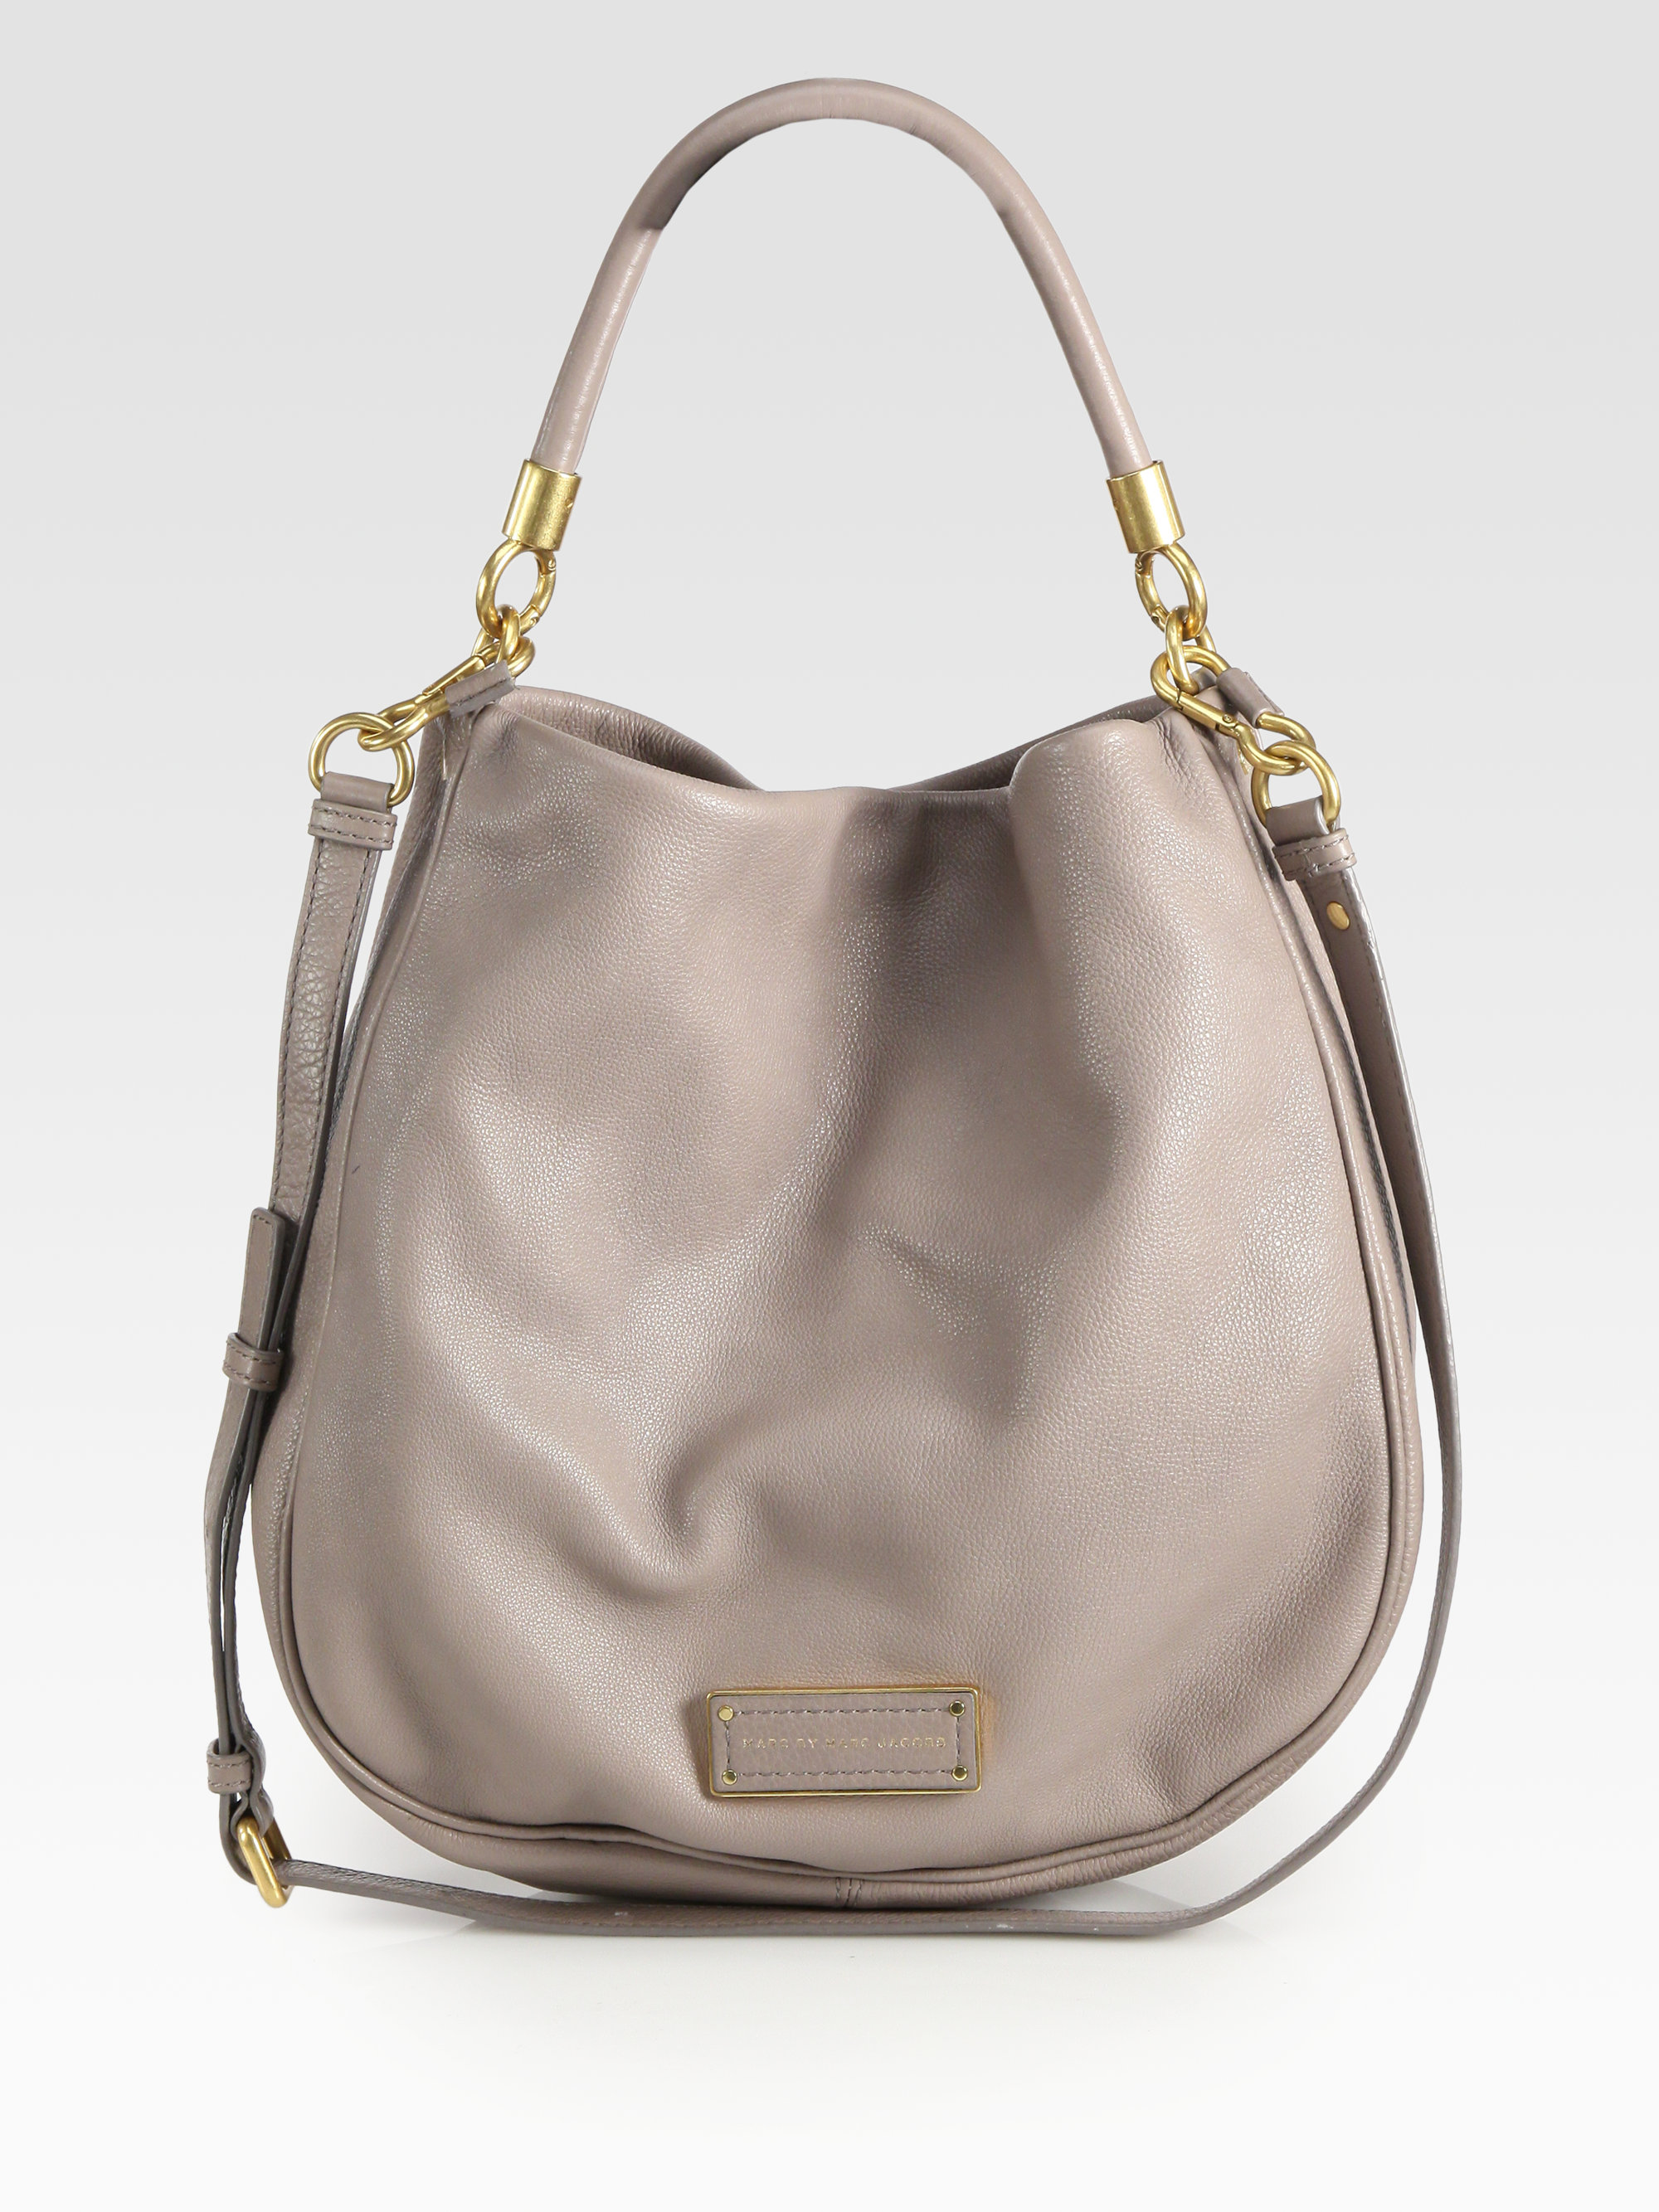 Marc by marc jacobs Too Hot To Handle Hobo Bag in Black | Lyst